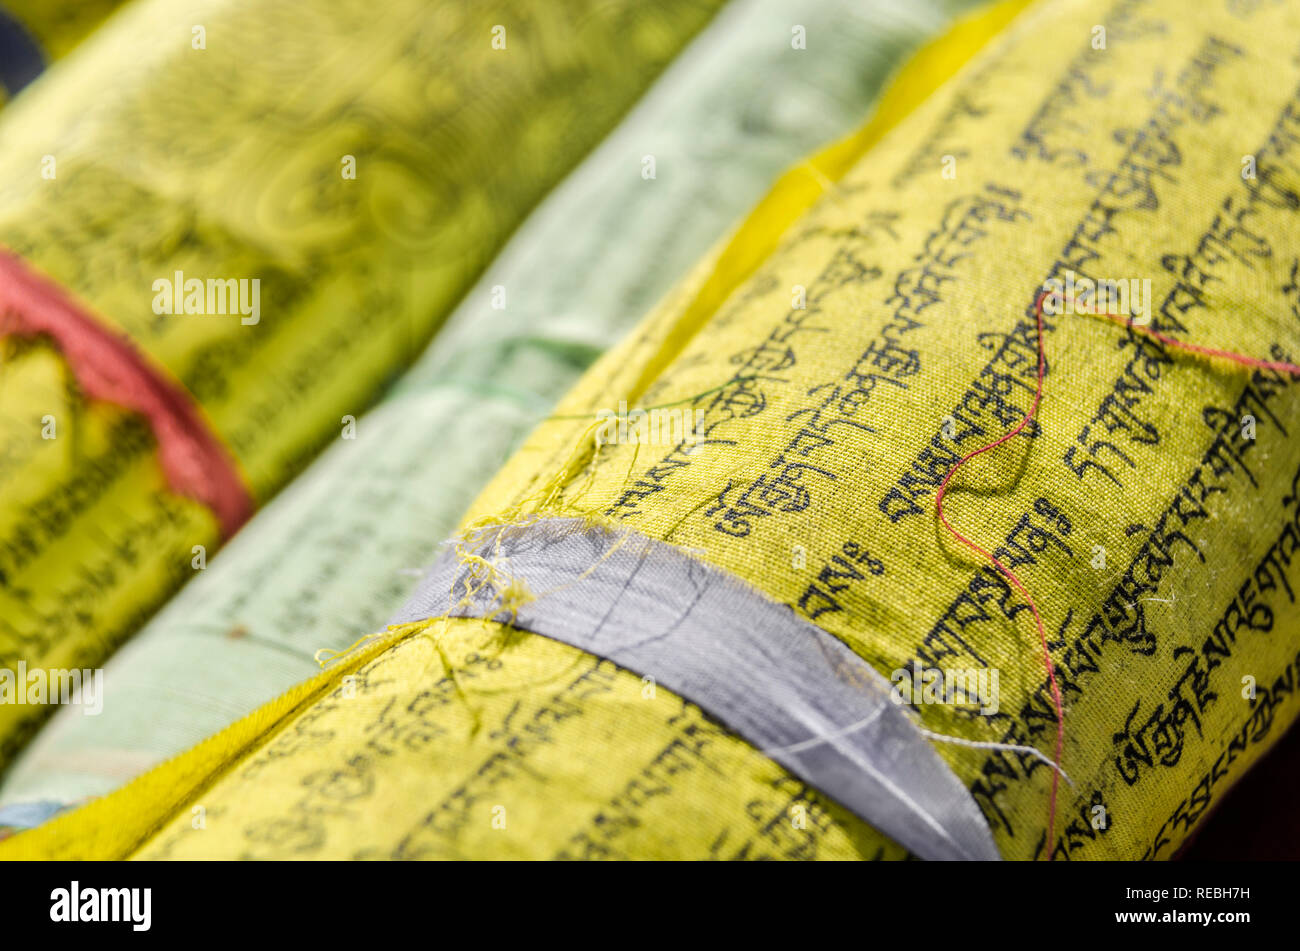 Close-up of rolled Buddhist prayer flags - Stock Image